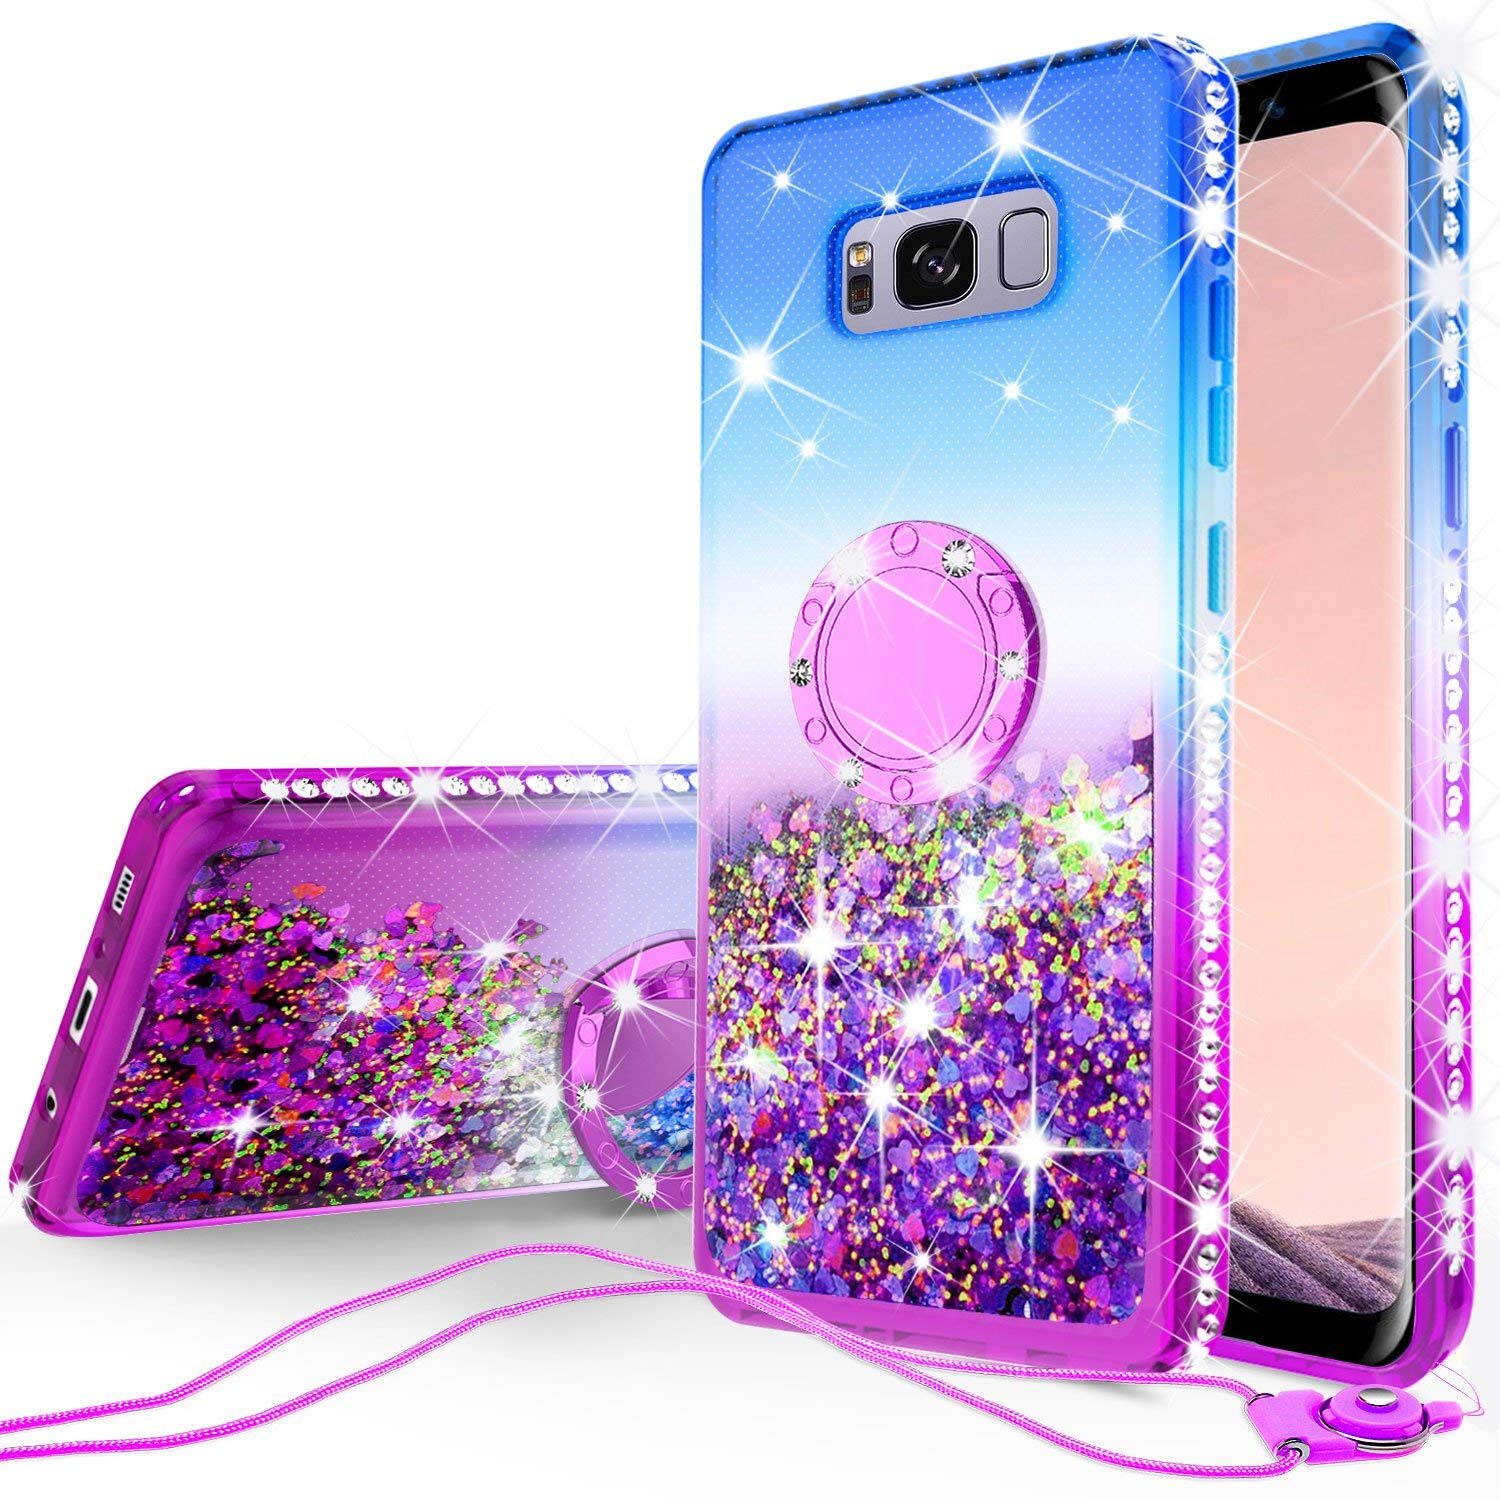 sports shoes 17a40 3779b Samsung Galaxy S8 Liquid Floating Quicksand Glitter Phone Case  Kickstand,Bling Diamond Bumper Ring Stand Protective Galaxy S8 Case for  Girl Women - ...